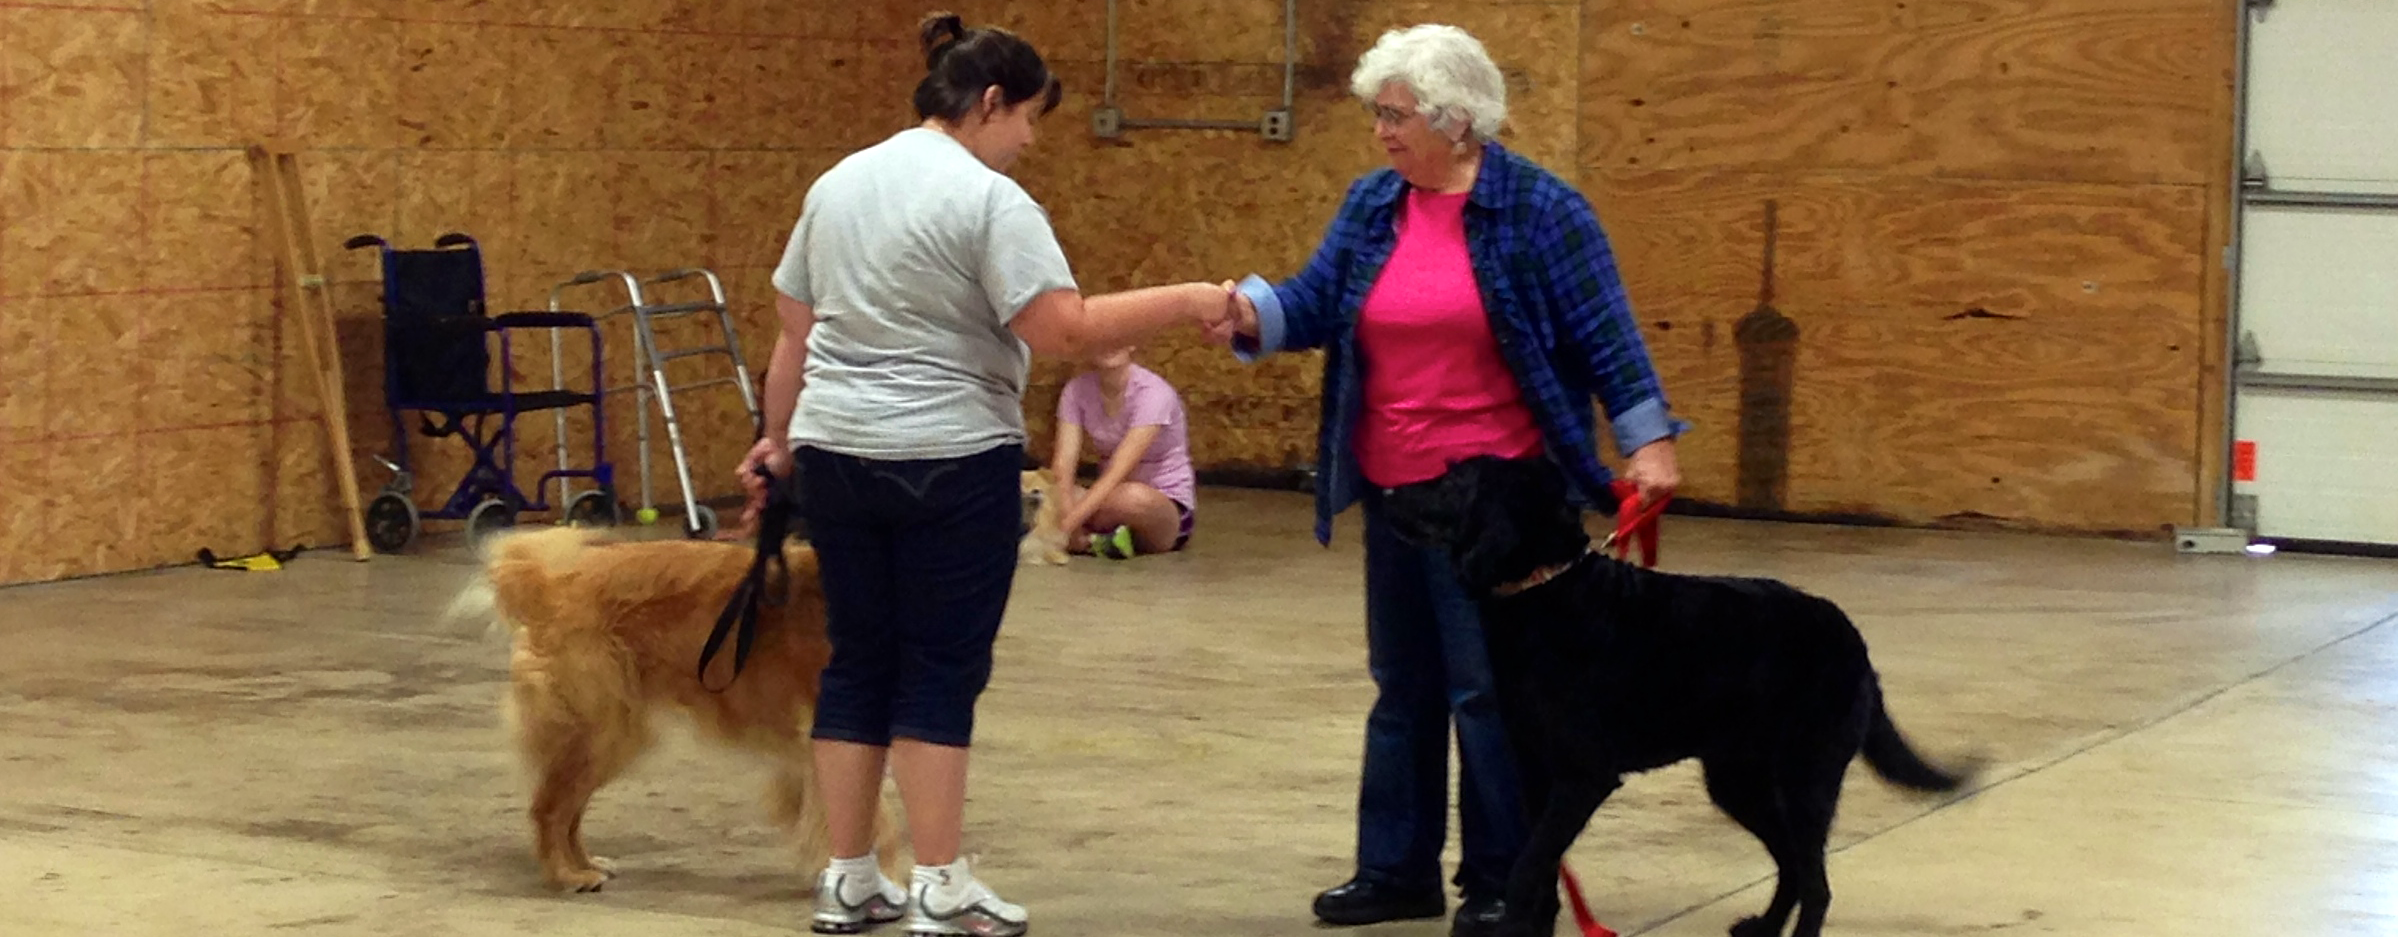 therapy_dog_training_class_syracuse